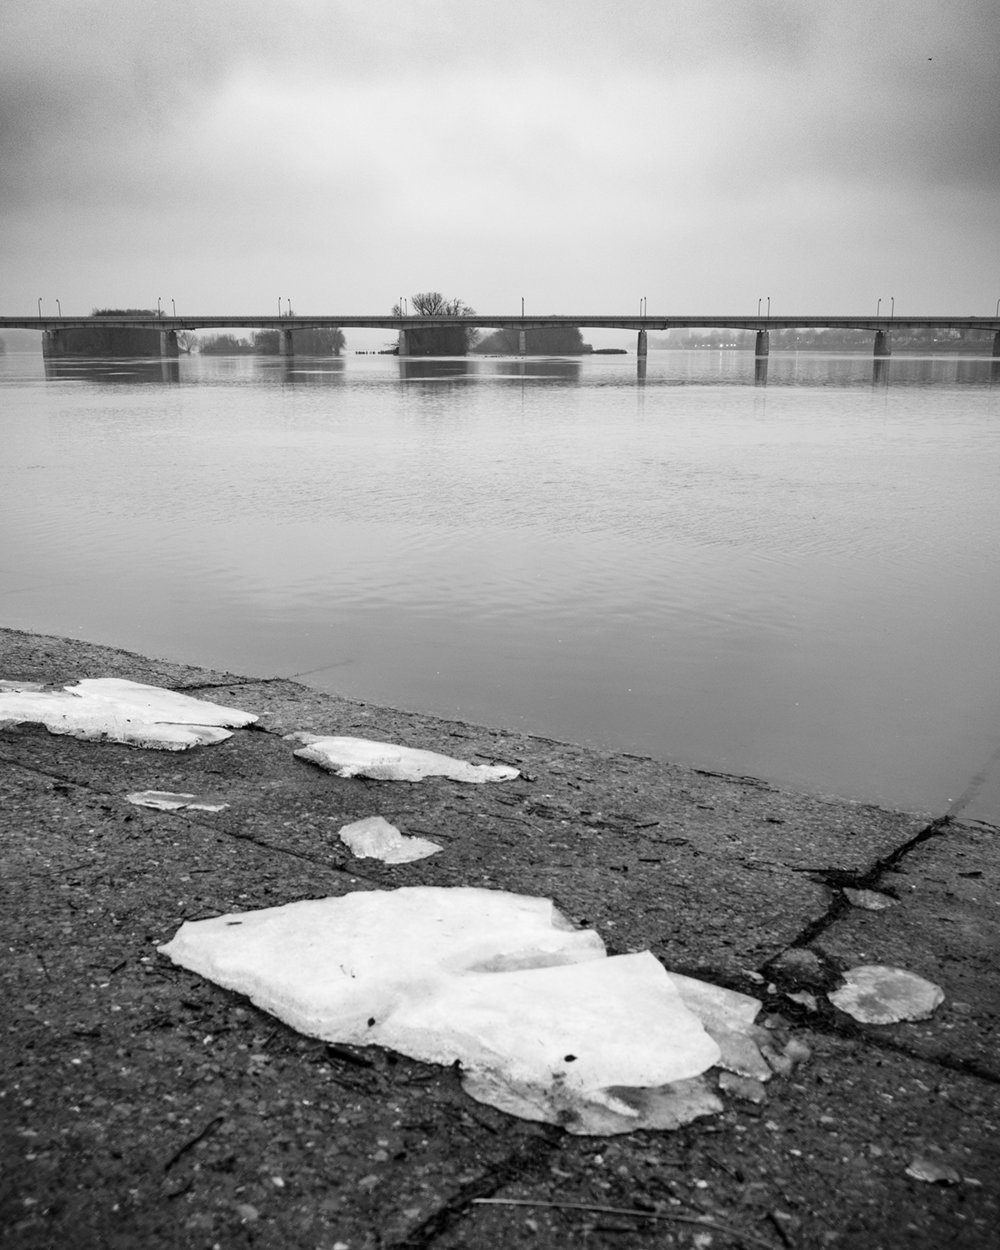 Susquehanna River - Harrisburg, Pennsylvania - fine art photography